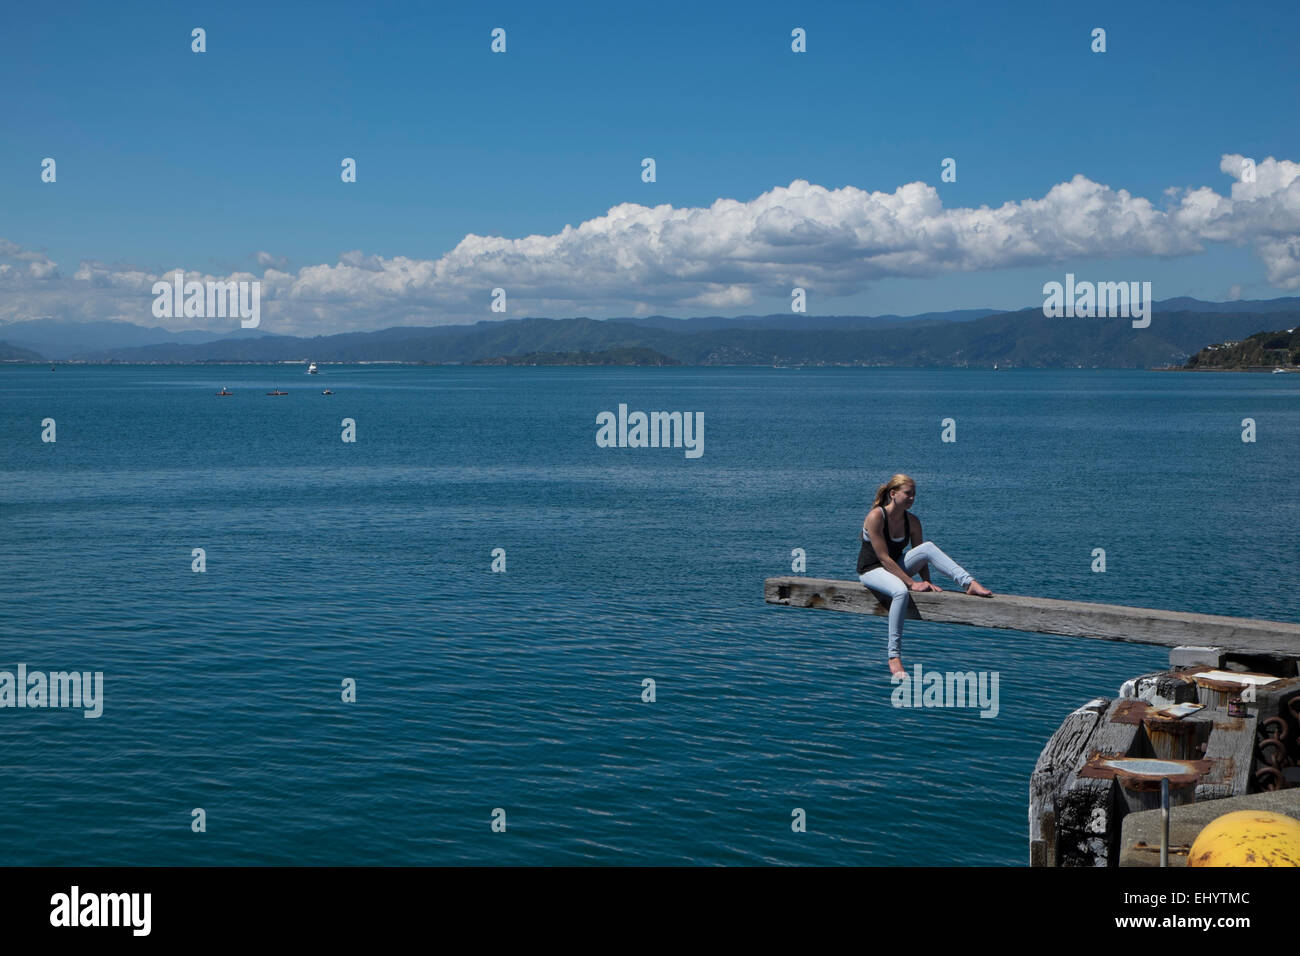 Woman sitting on wooden plank, Lambton Harbour, Wellington, North Island, New Zealand - Stock Image